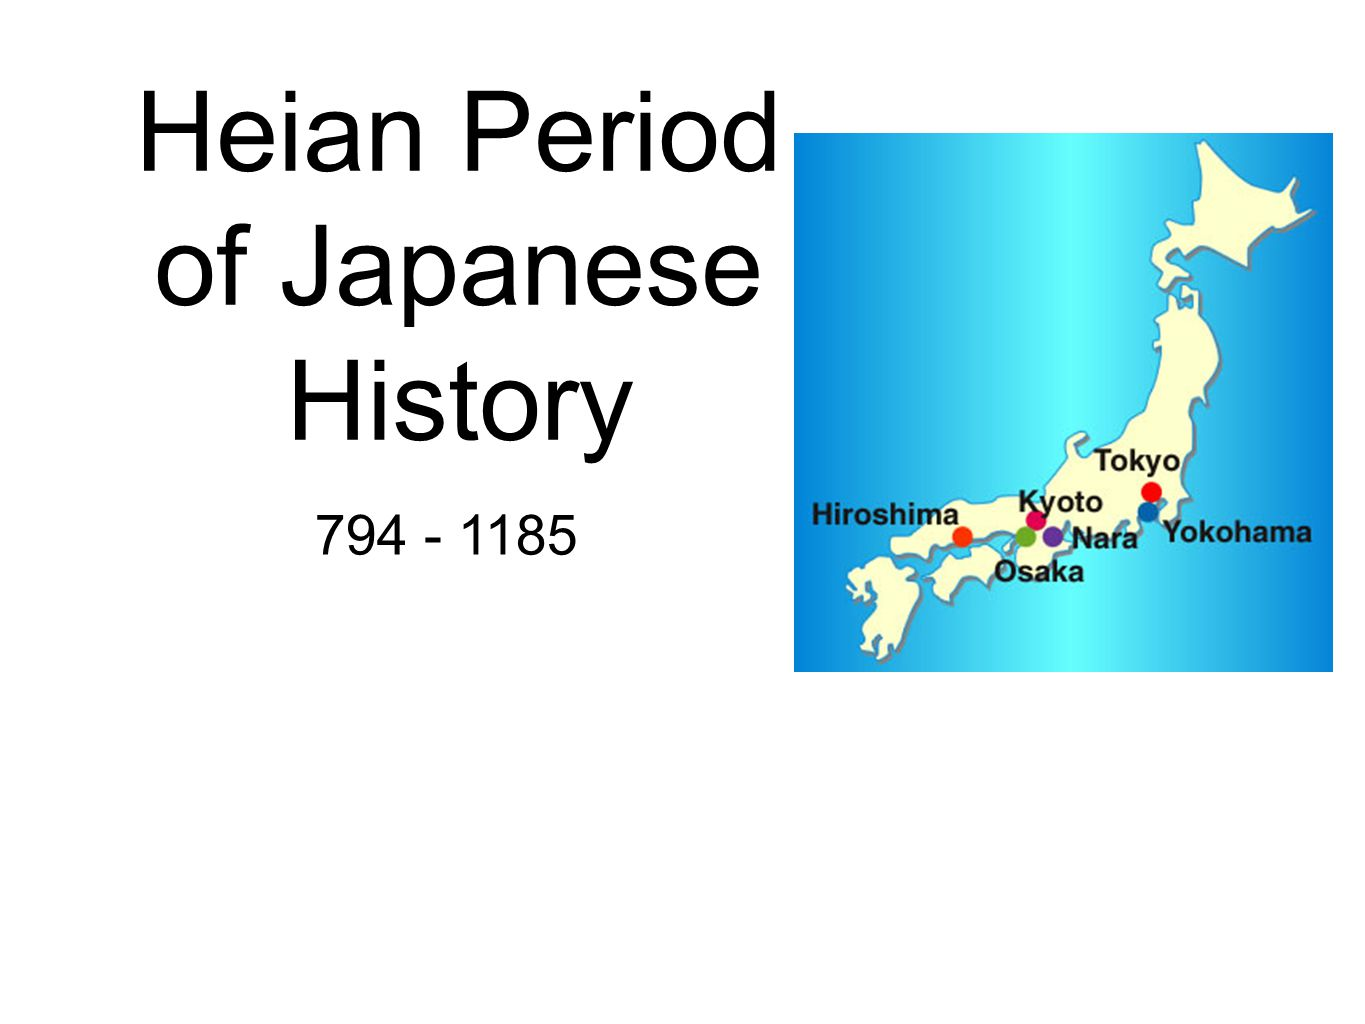 Heian Period of Japanese History 794 - 1185